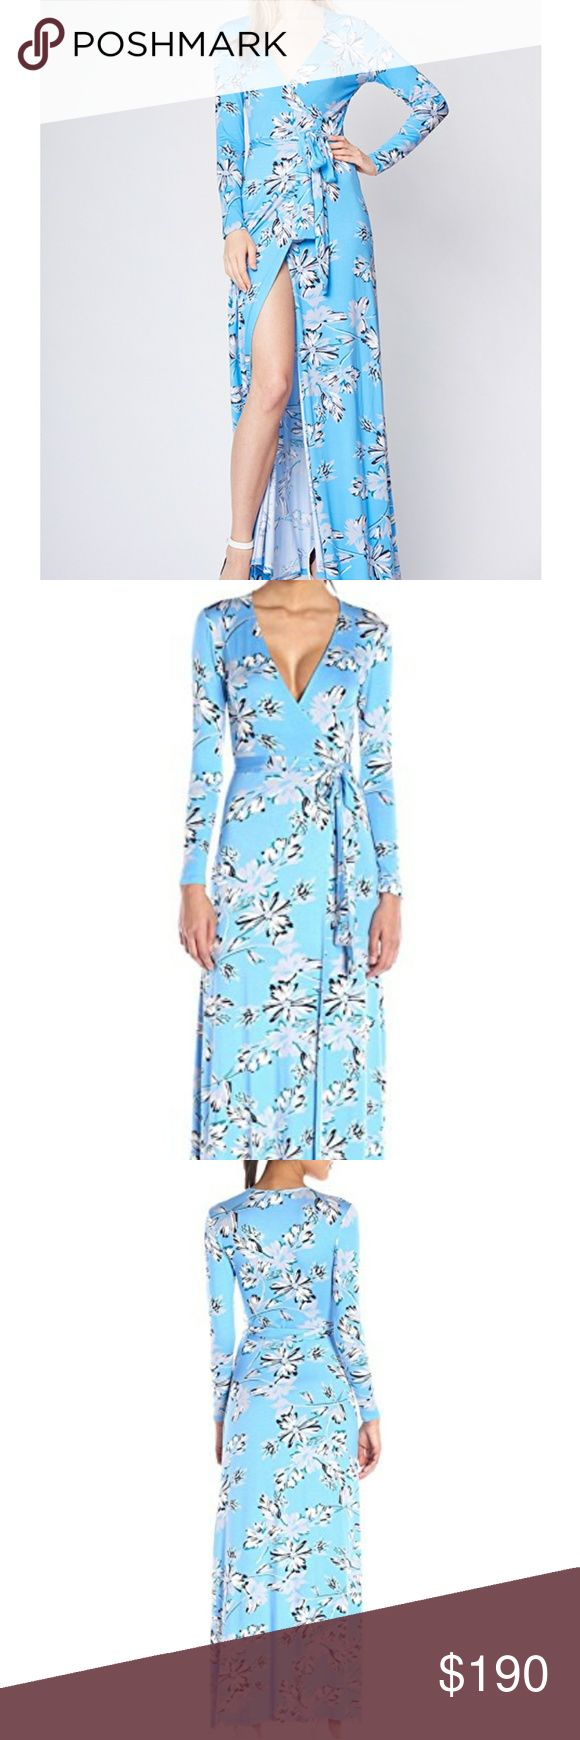 Yumi Kim Jersey Maxi Dandelion Blue- wrap silhouette gown. Long sleeves. Unlined. Size Medium   Fabric is soft Jersey. - Super soft!   95% Rayon and 5% Spandex. Dry clean only.  Made in USA 58 inches long. Yumi Kim Dresses Maxi